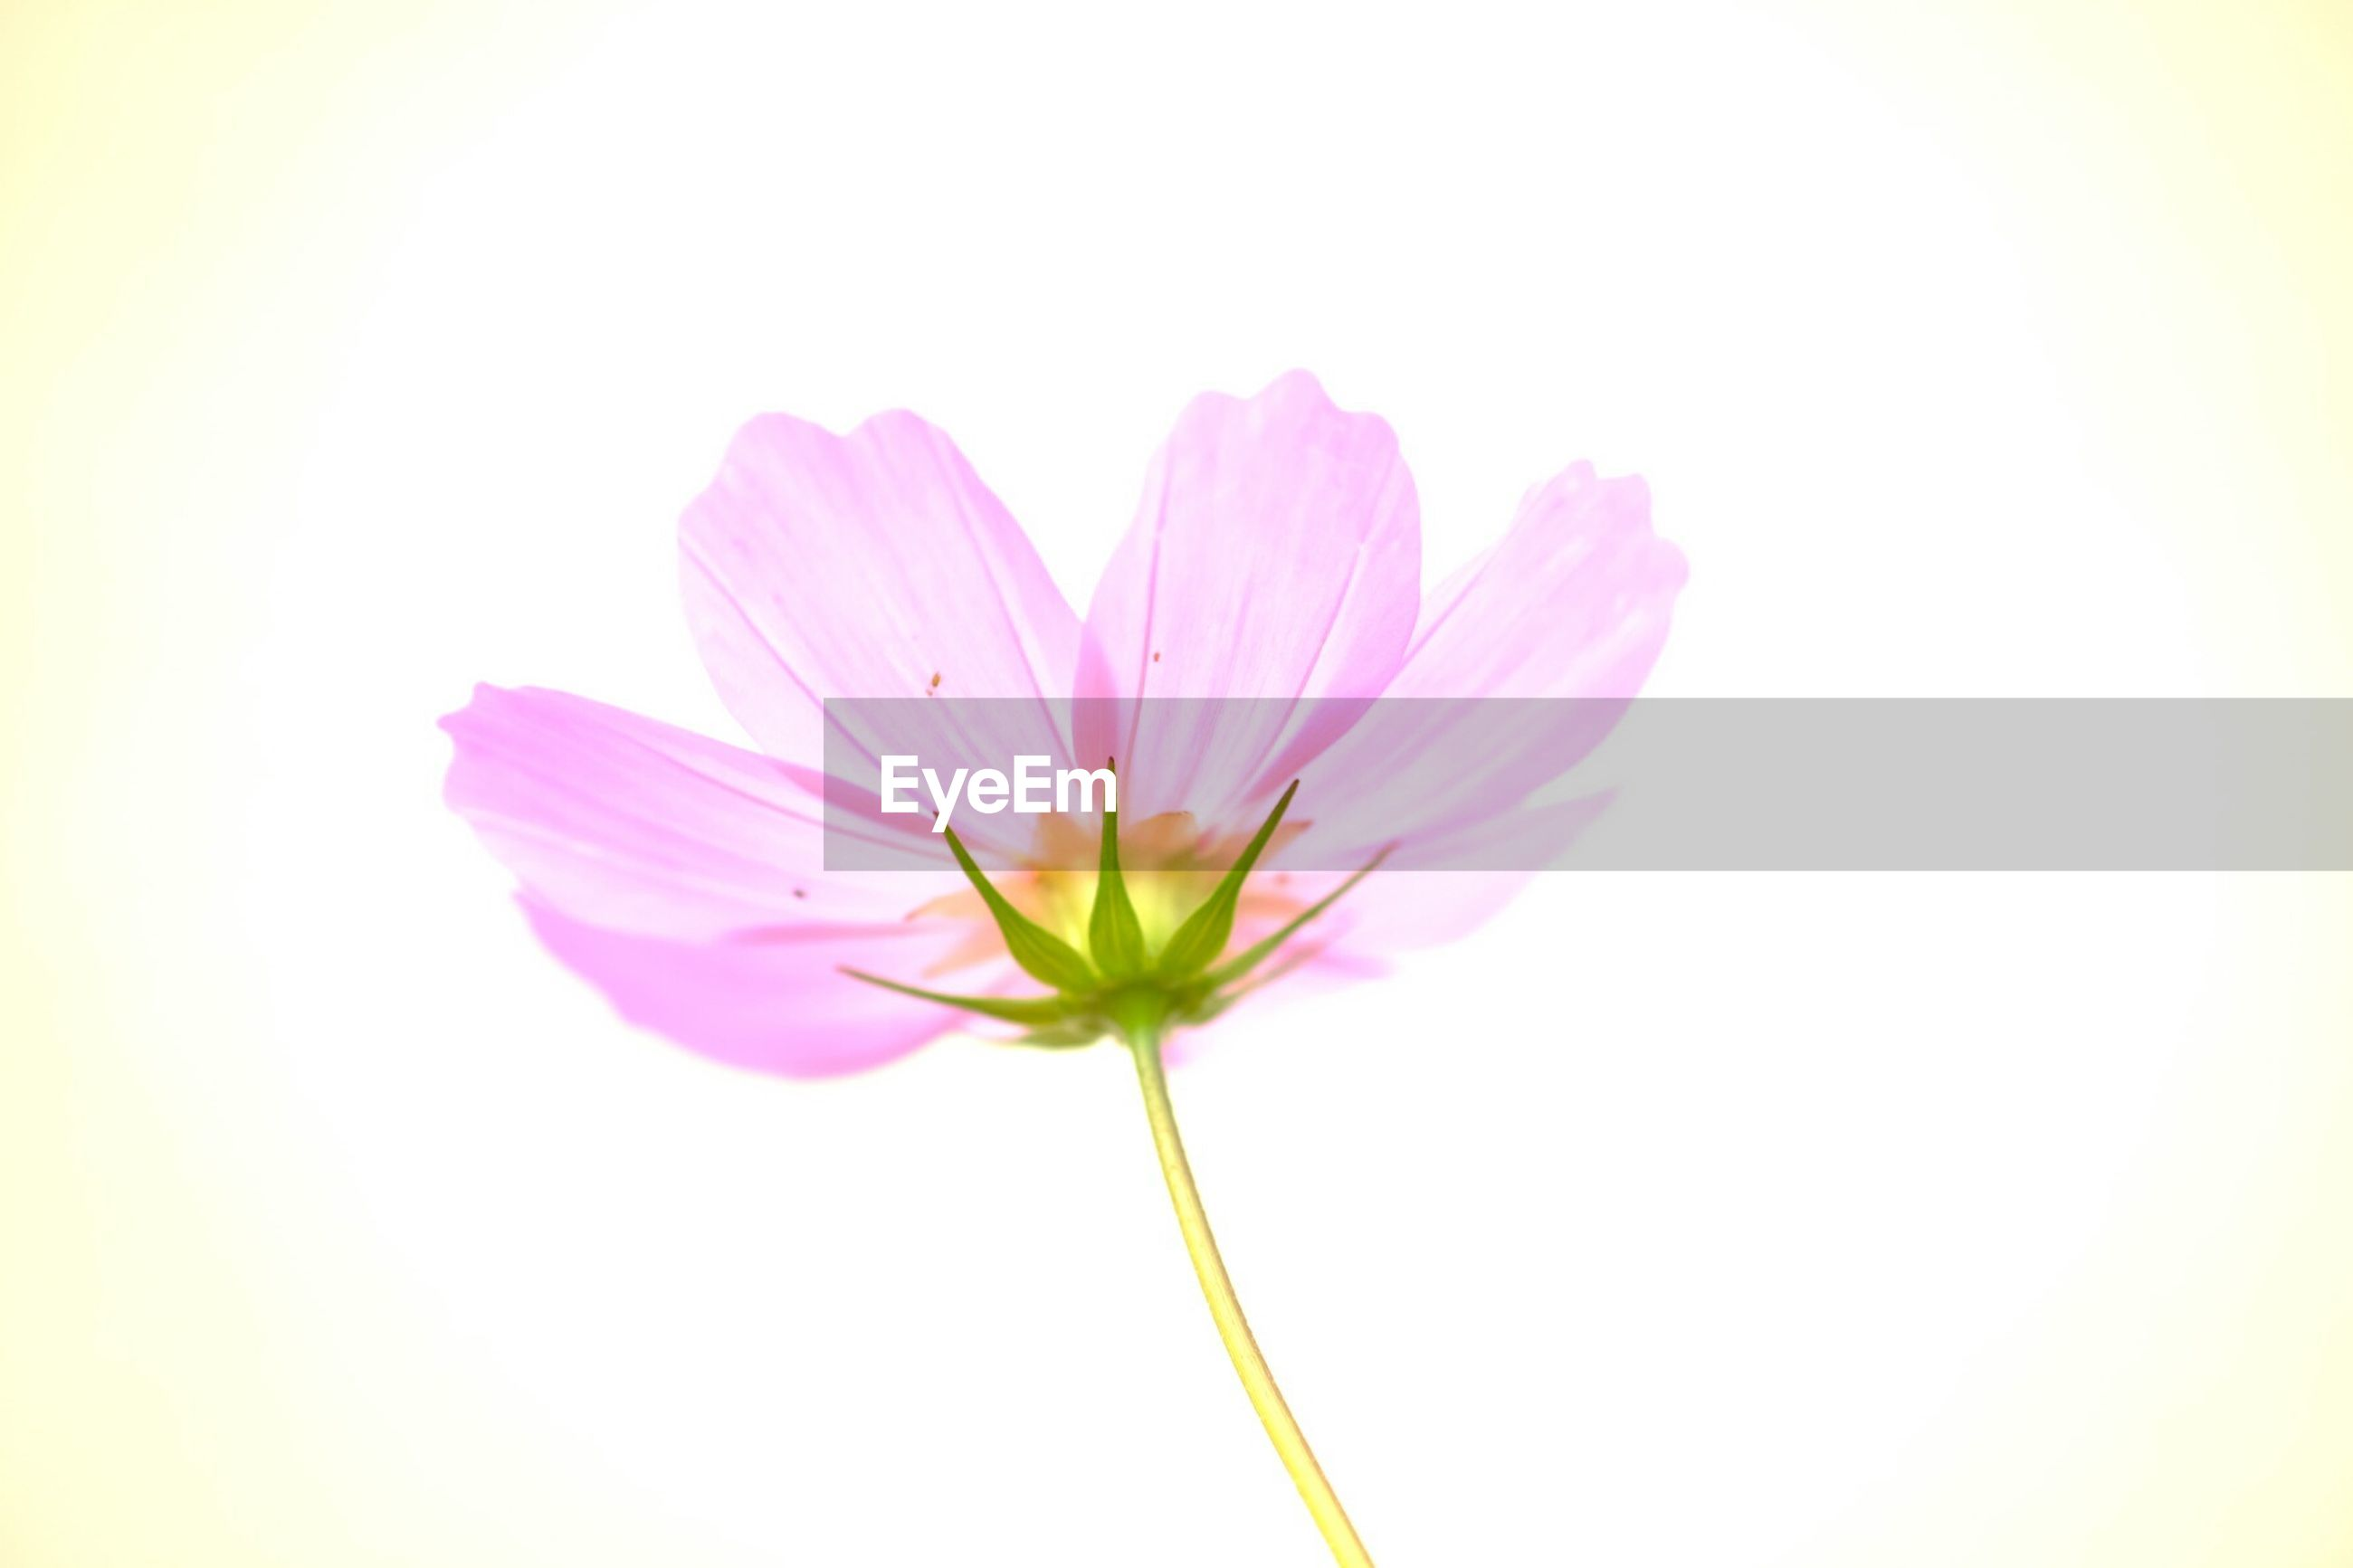 flower, petal, fragility, freshness, flower head, beauty in nature, stem, pink color, close-up, single flower, nature, growth, copy space, focus on foreground, blooming, plant, bud, no people, pink, in bloom